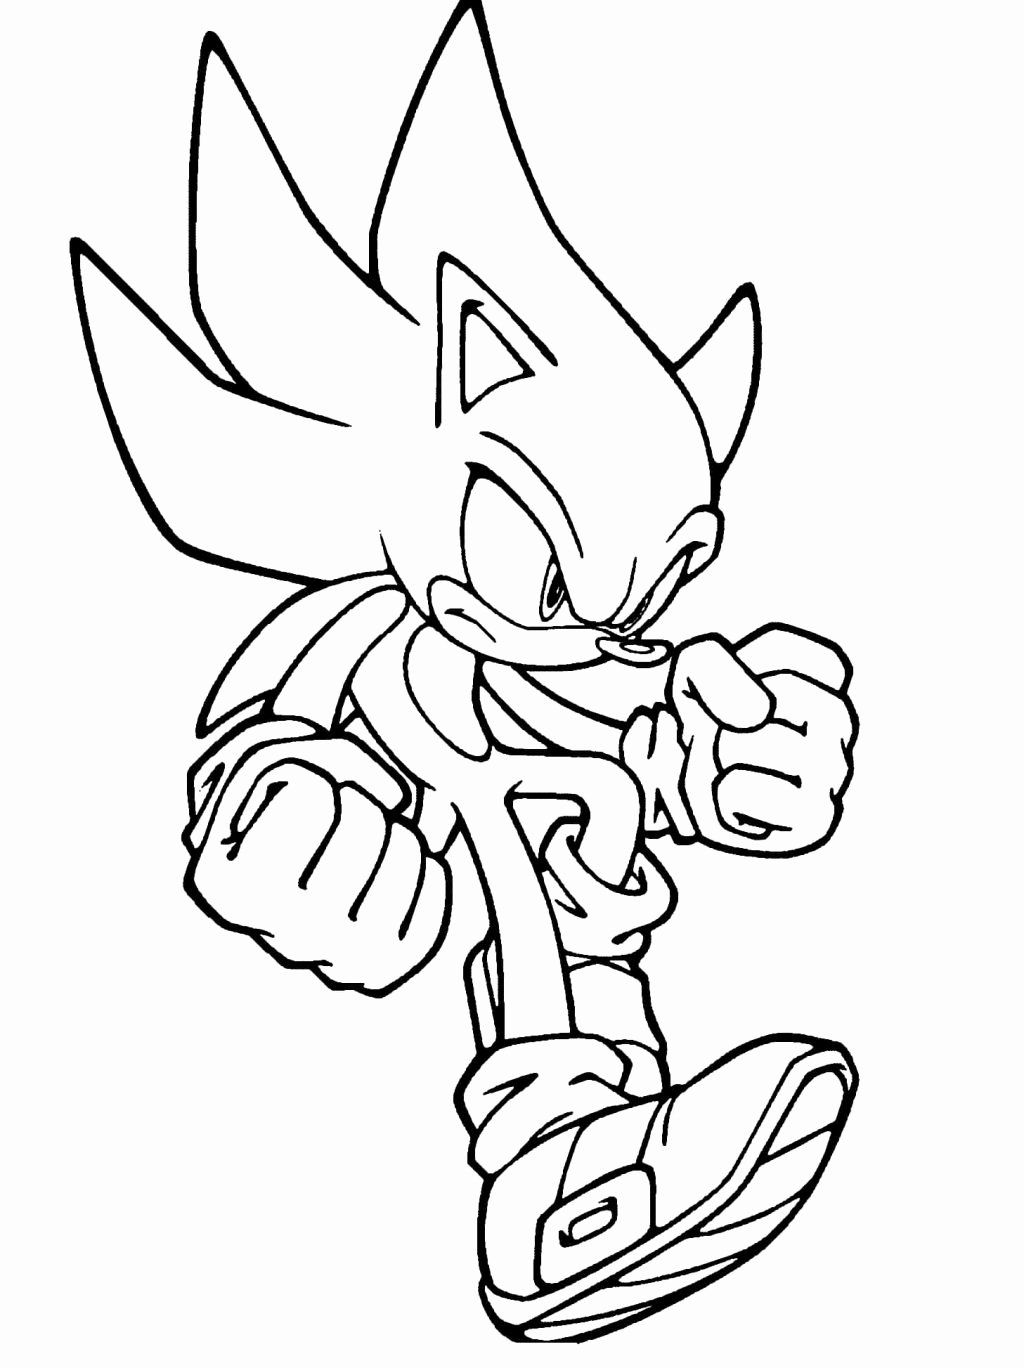 Cute Baby Fox Coloring Pages Elegant Coloring Books Sonic Coloring Pages Pet Animal Sheets Hedgehog Colors Fox Coloring Page Coloring Pages